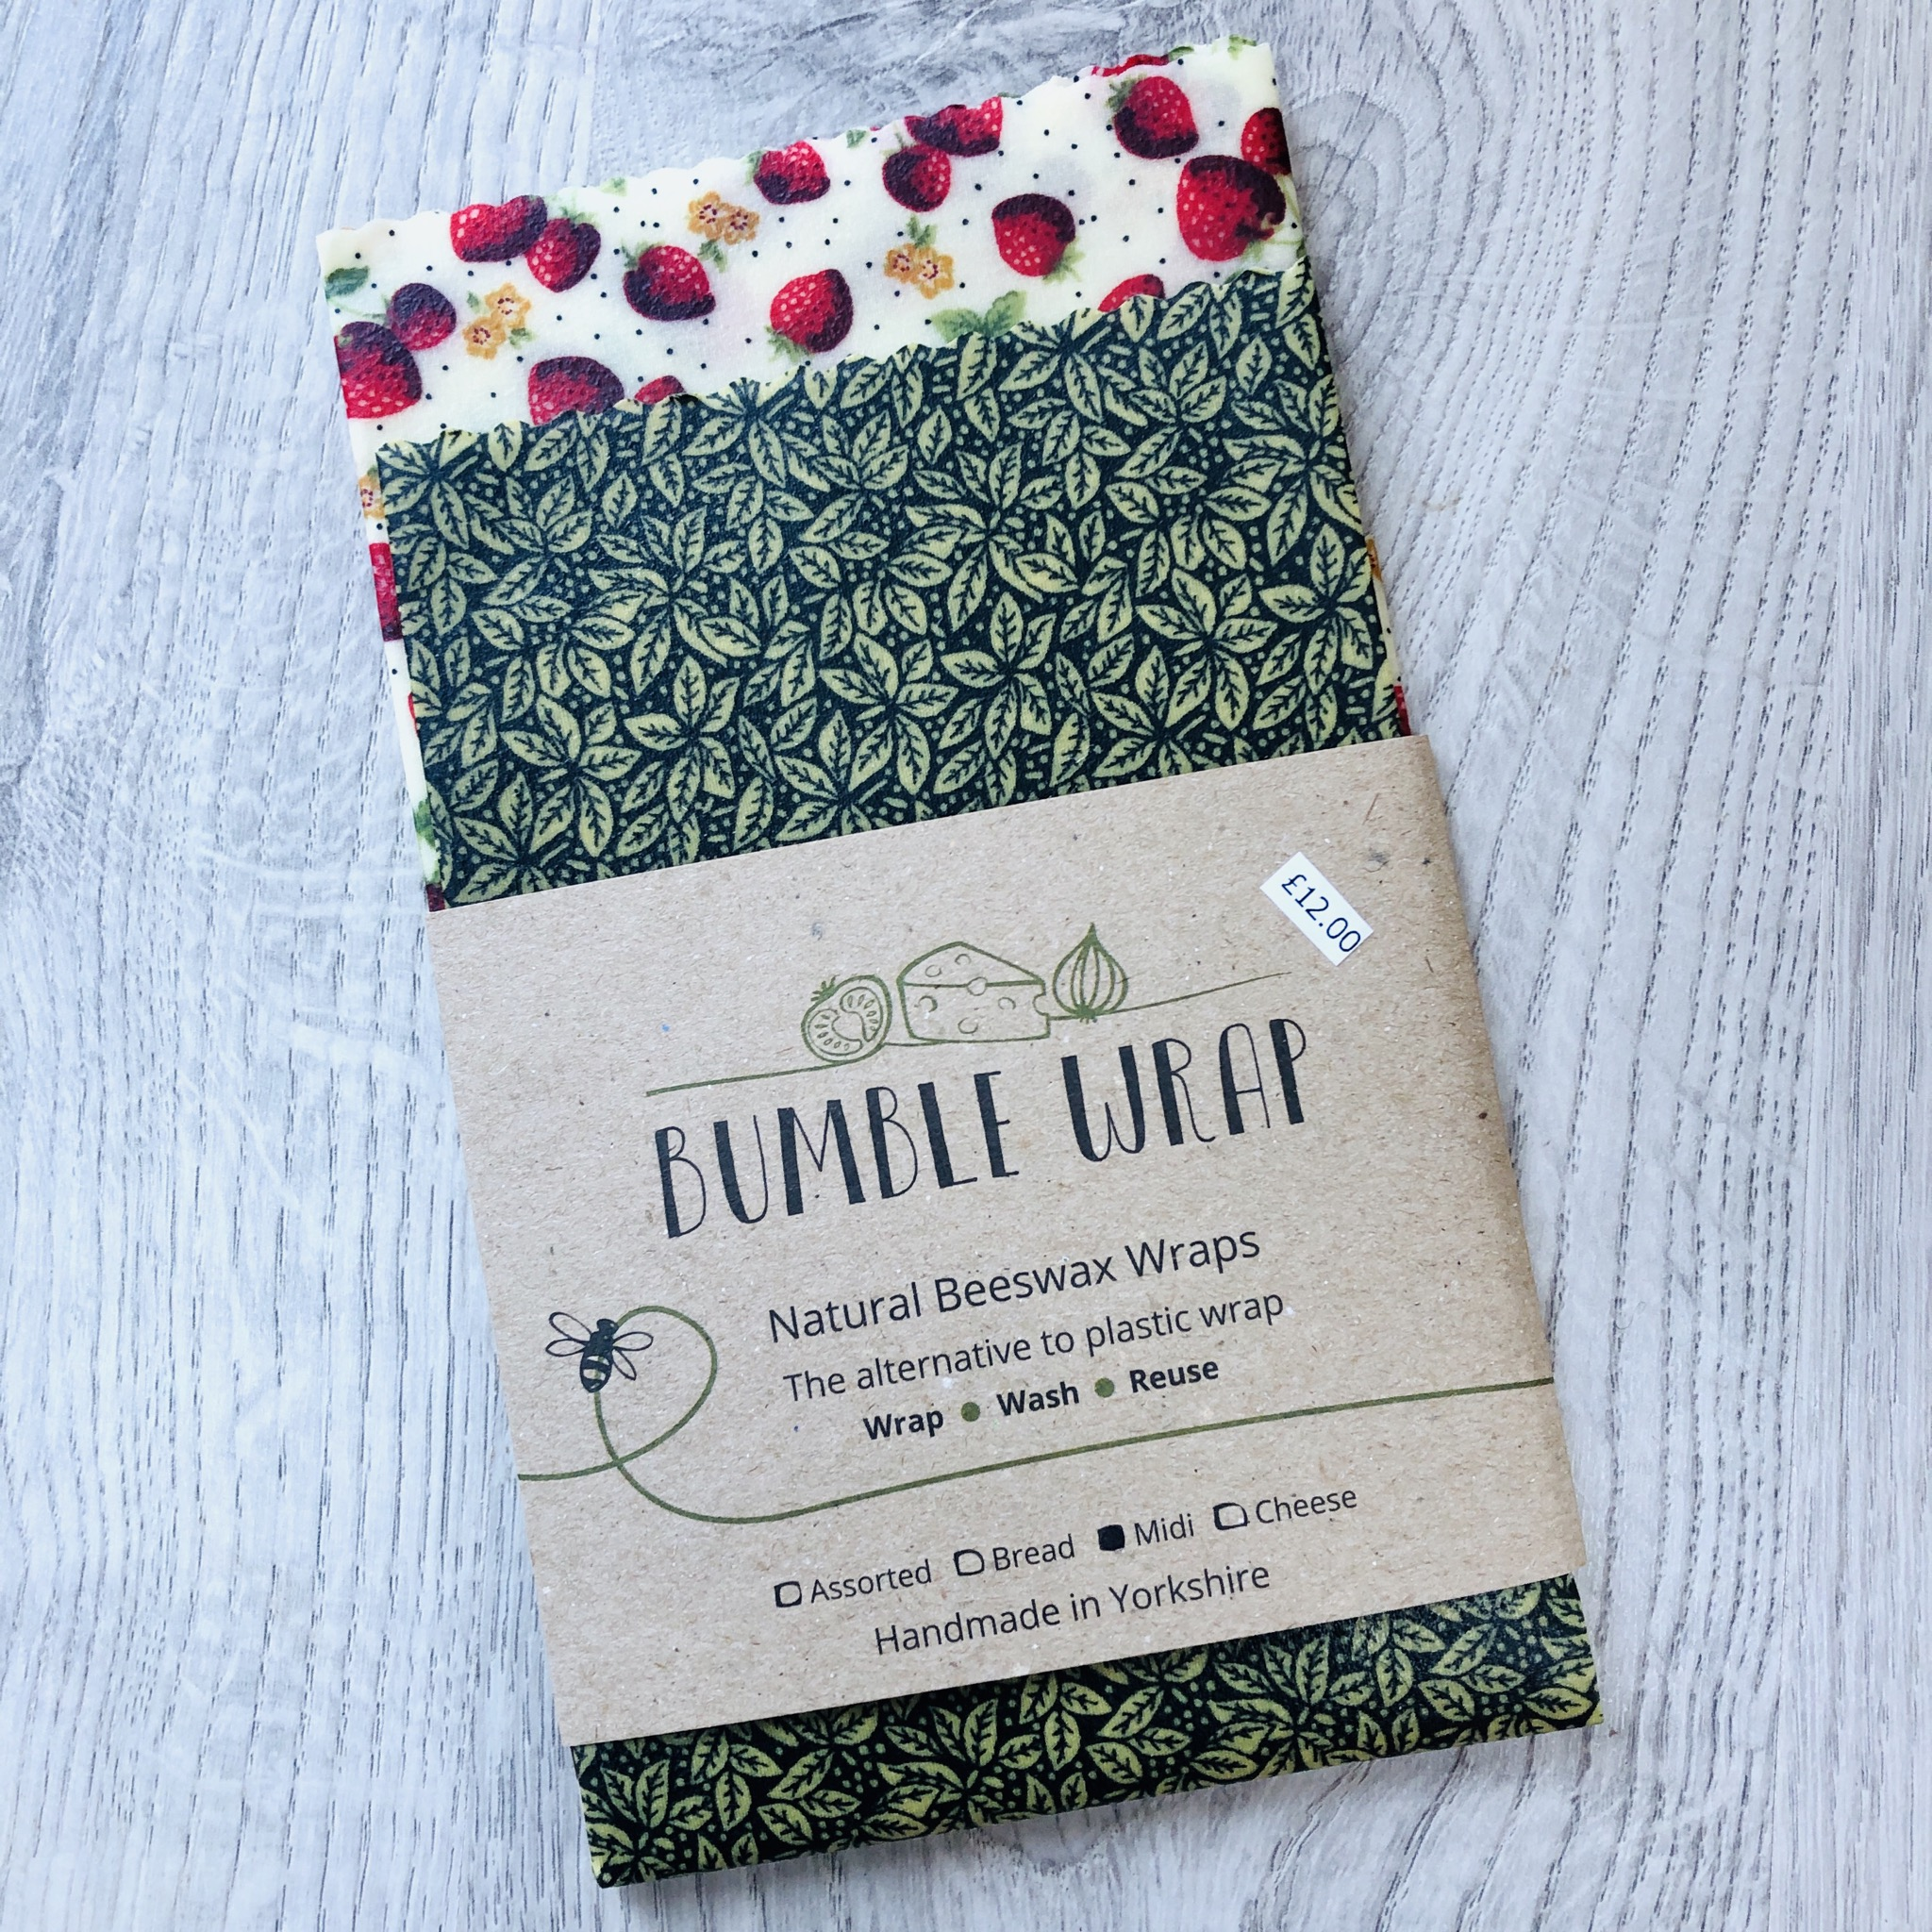 Bumble wrap strawberry print, natural beeswax wraps